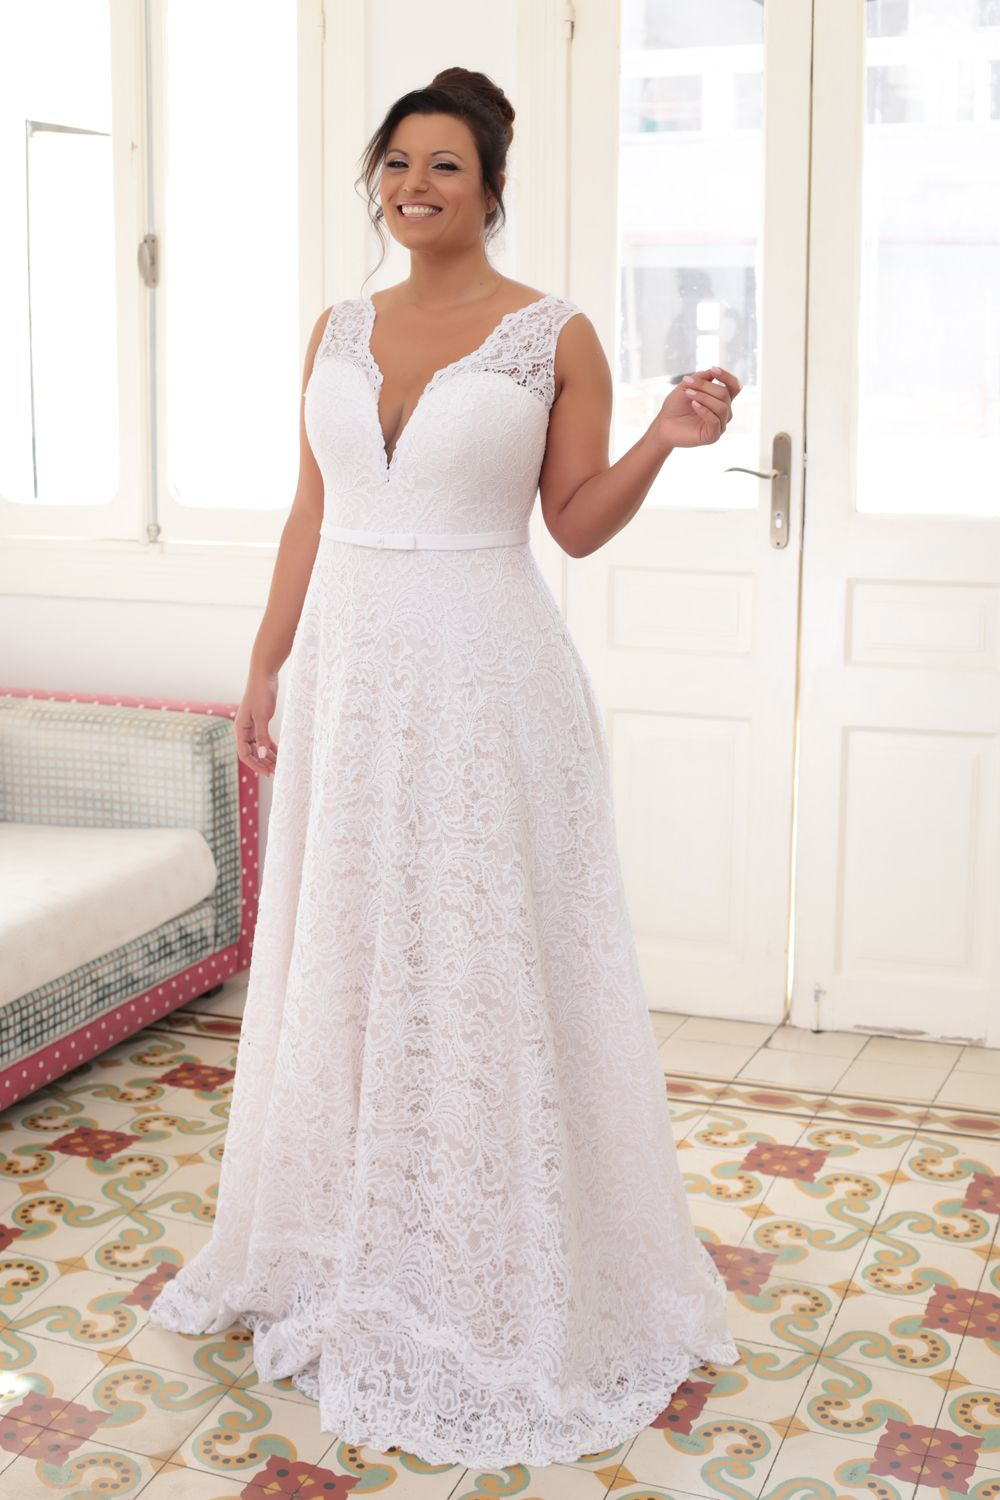 Wonderful 51 stunning plus size wedding dresses girlyard an elegant collection of plus size wedding dresses at designer bridal house we embrace women of every shape find your perfect gown at our armadale store ombrellifo Image collections